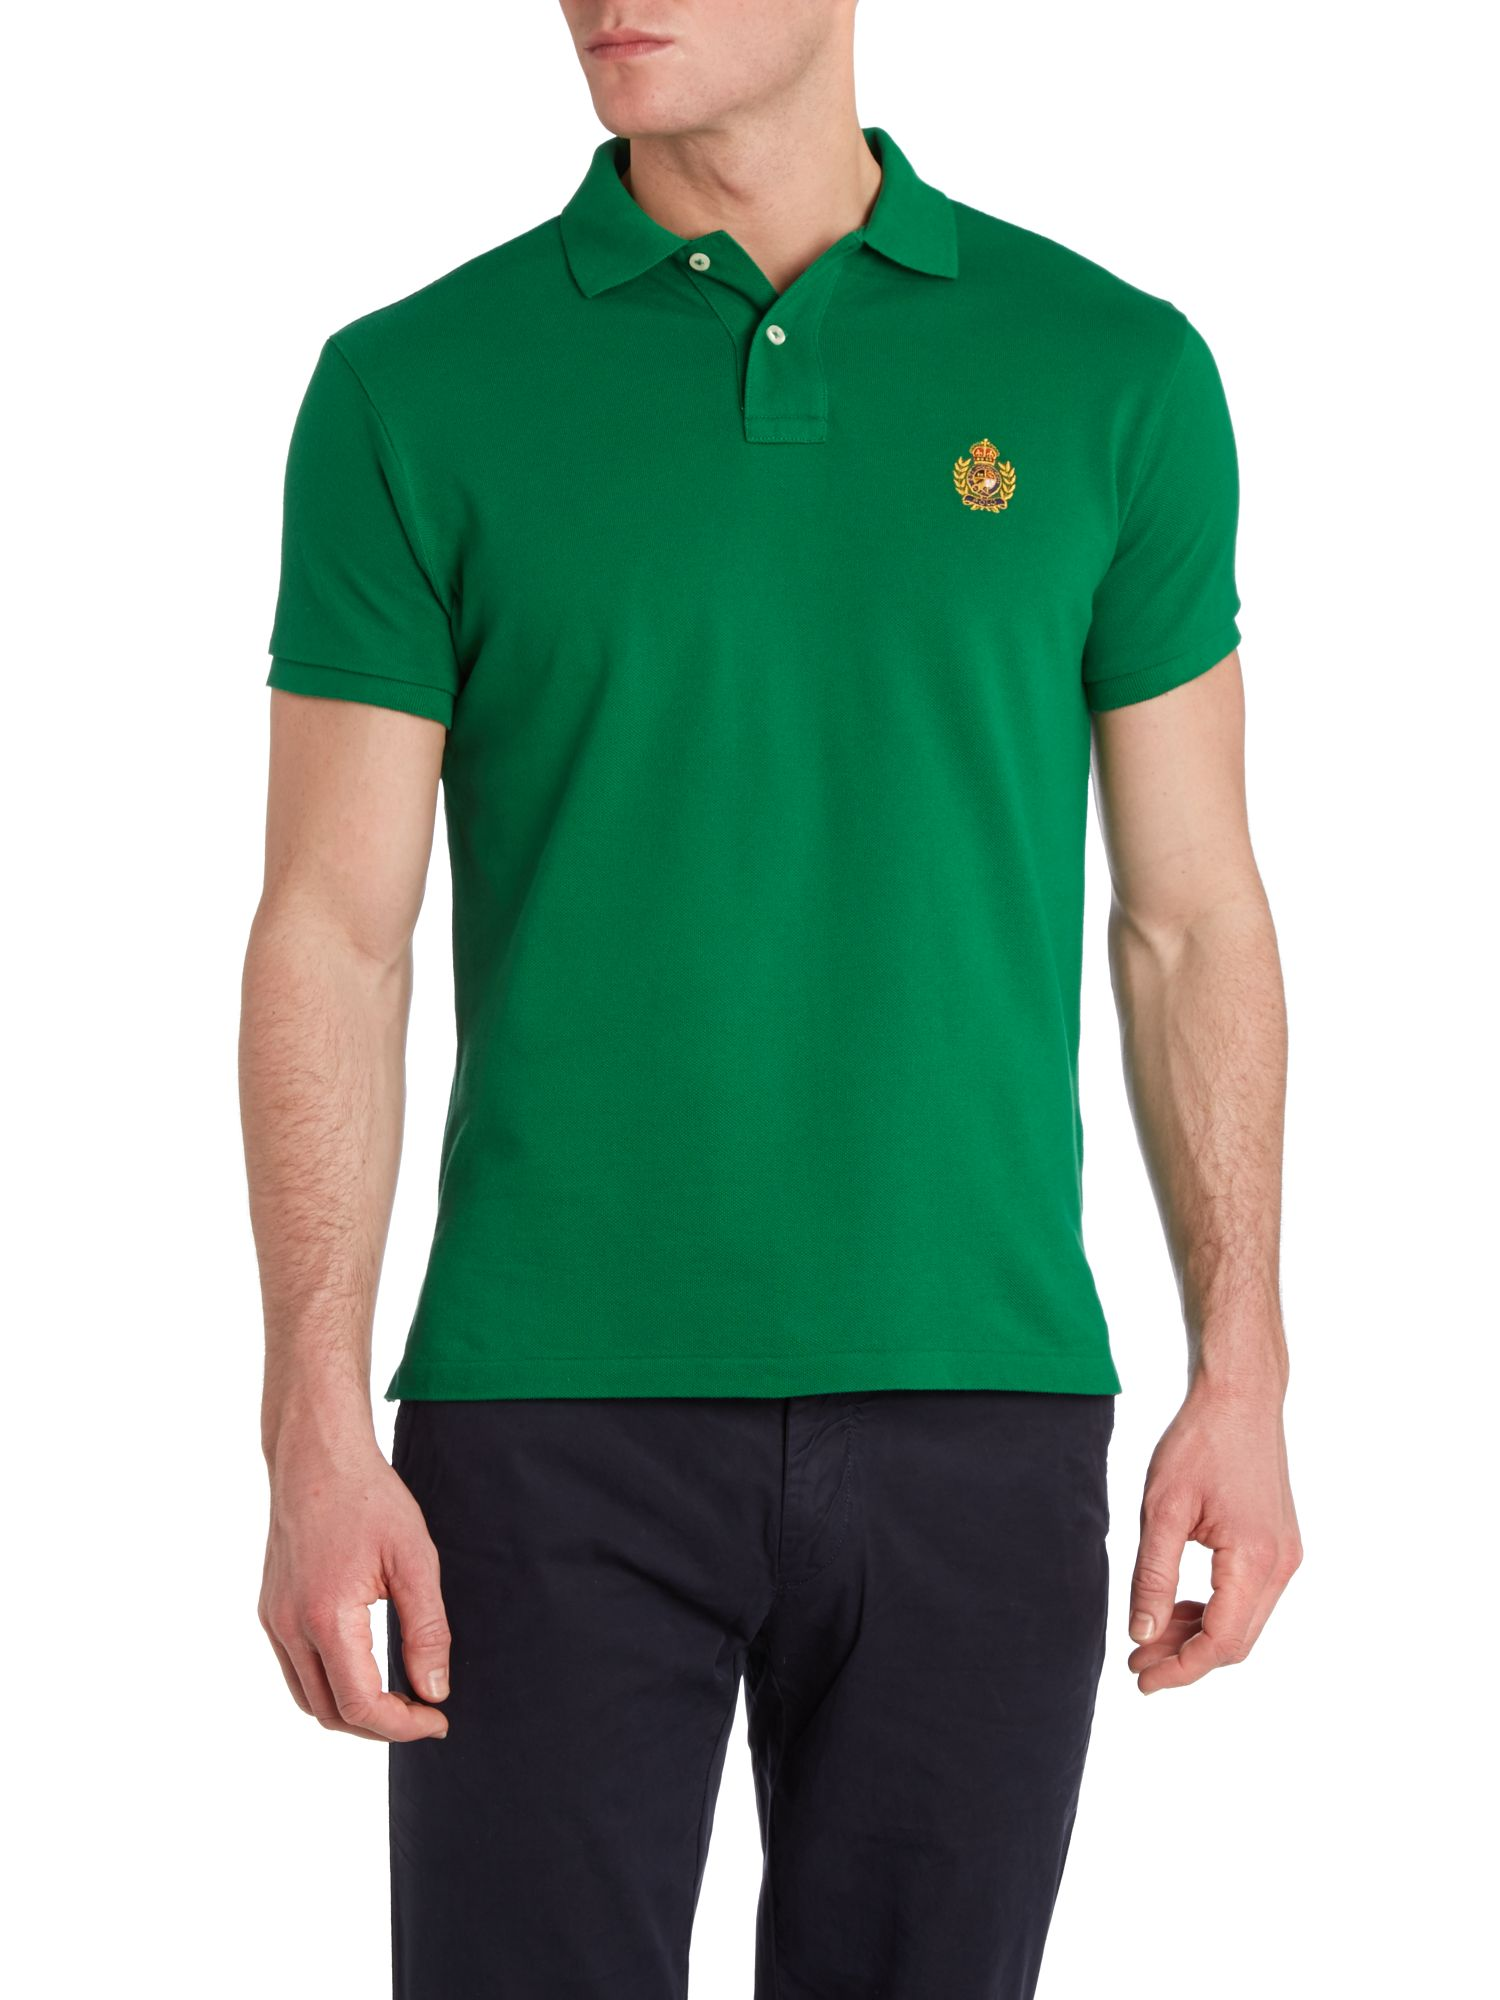 Crest badge polo shirt